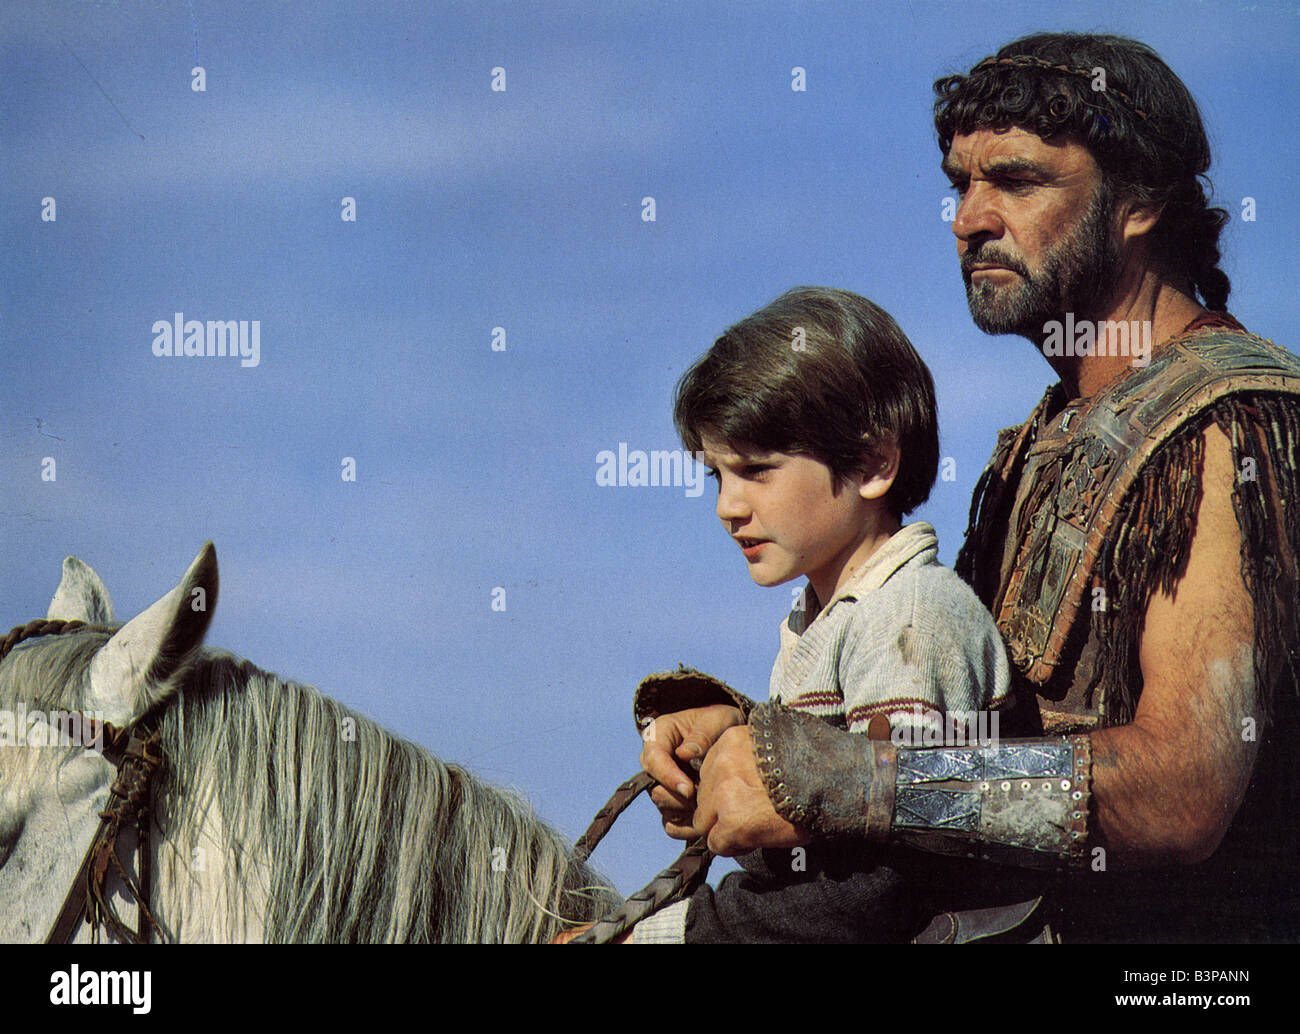 TIME BANDITS 1981 Handmade Films film with Sean Connery - Stock Image